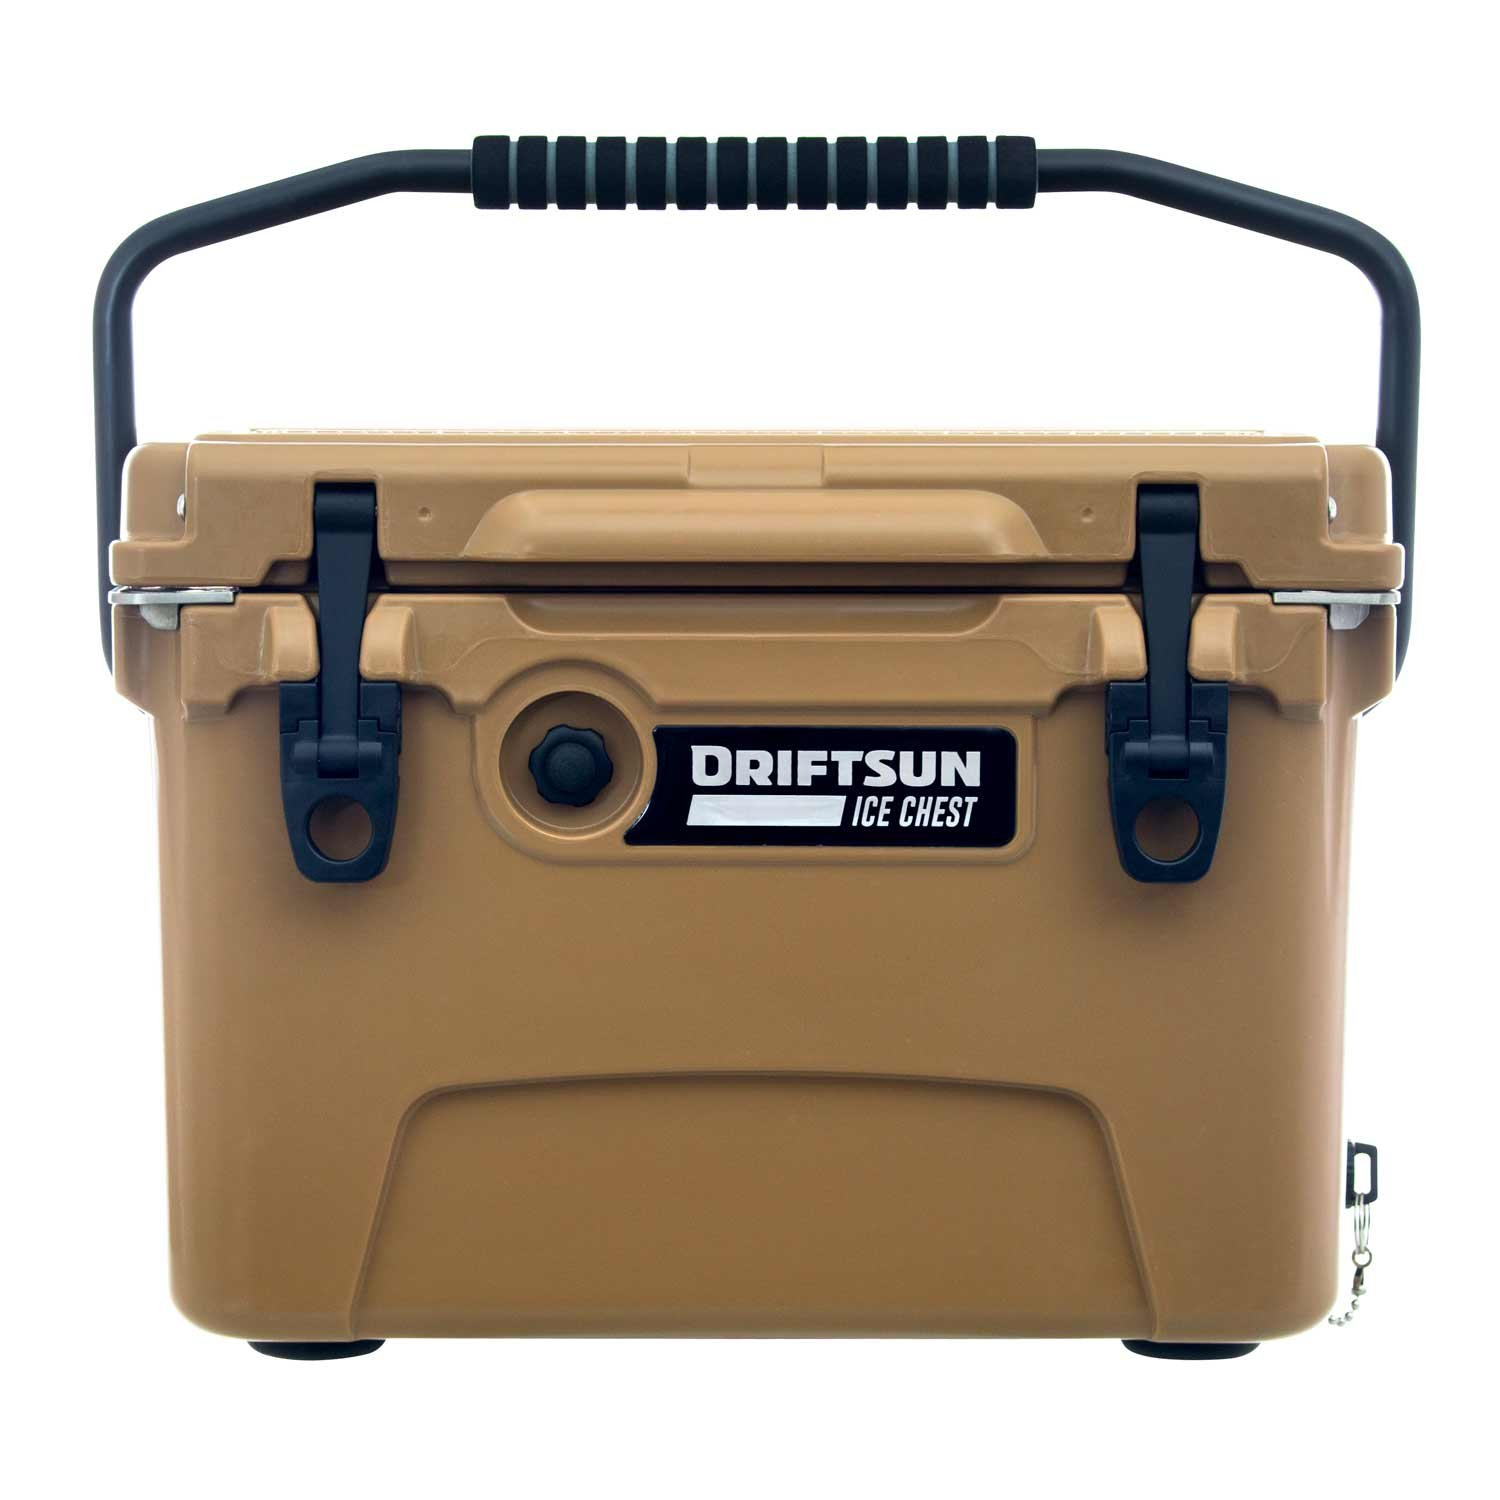 Driftsun 20-quart Ice Chest Commercial Grade Insulated Cooler